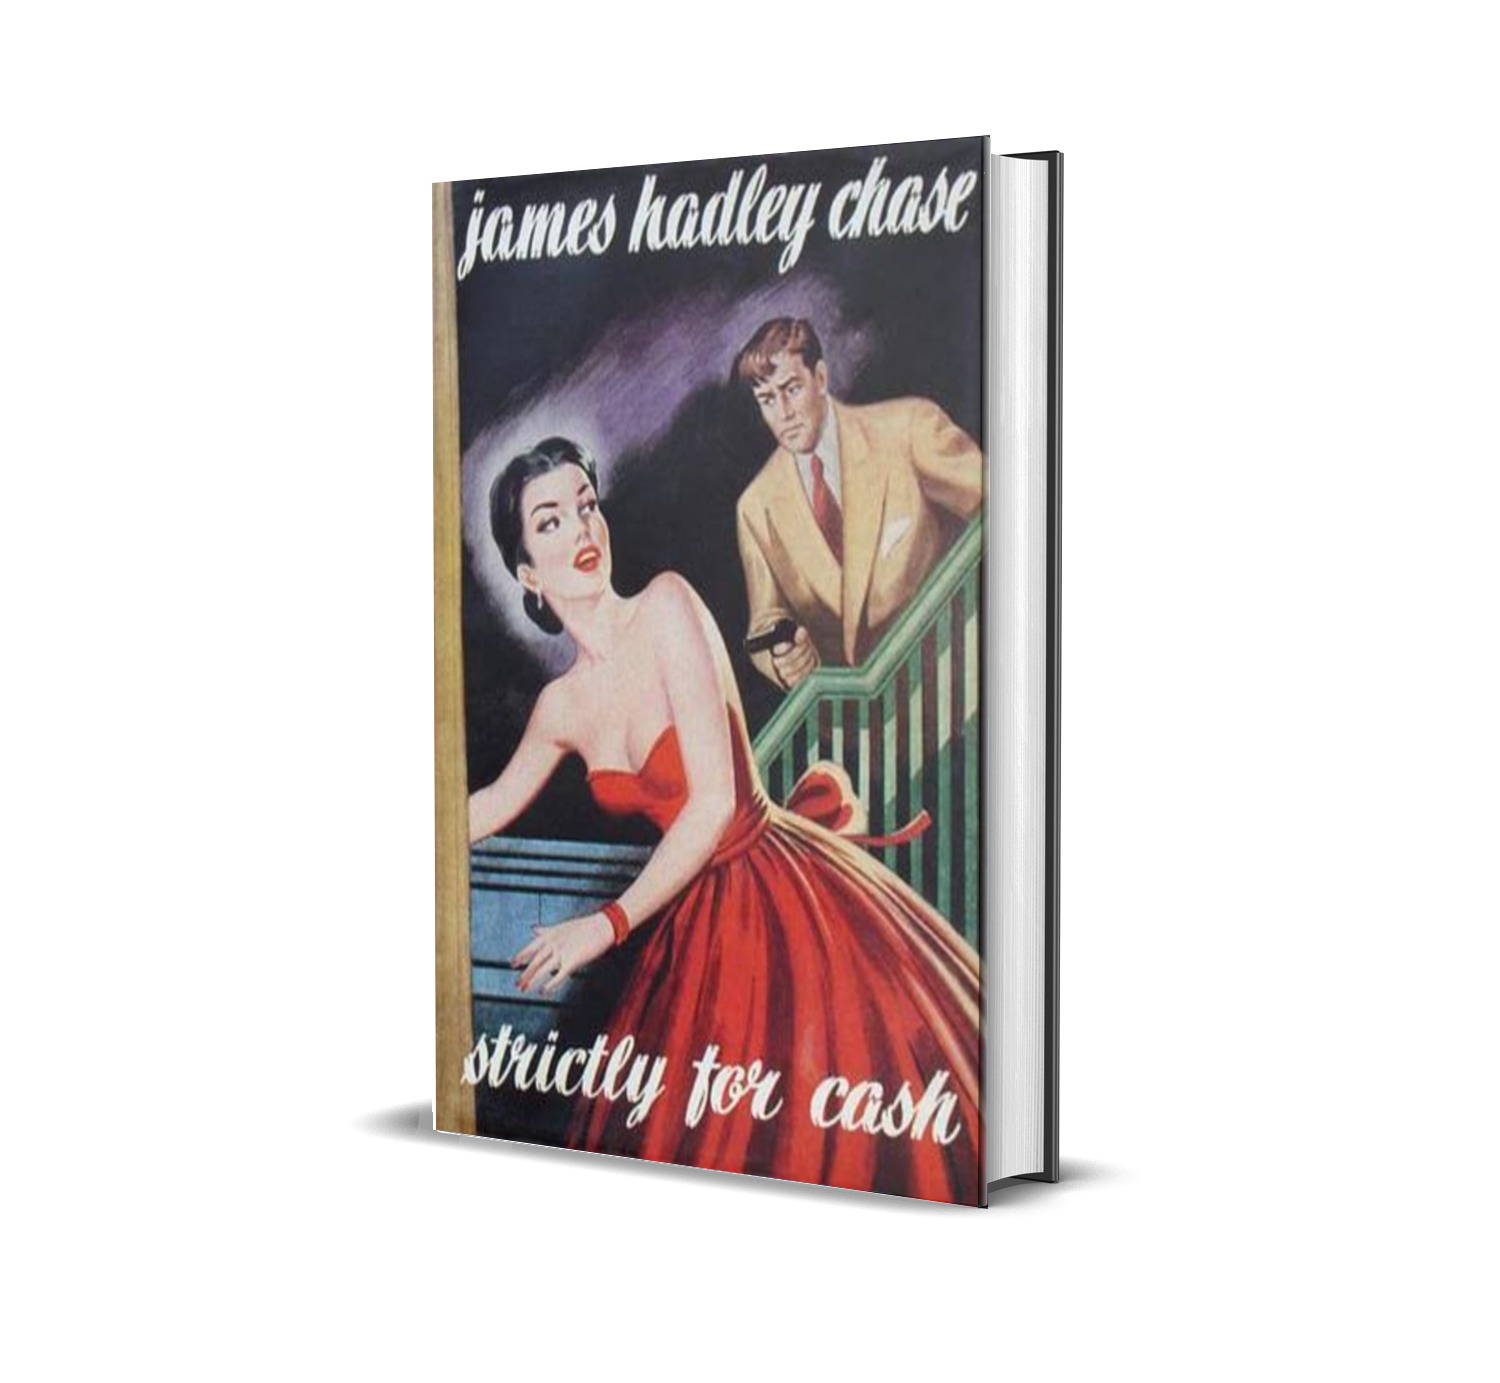 STRICTLY FOR CASH JAMES HADLEY CHASE